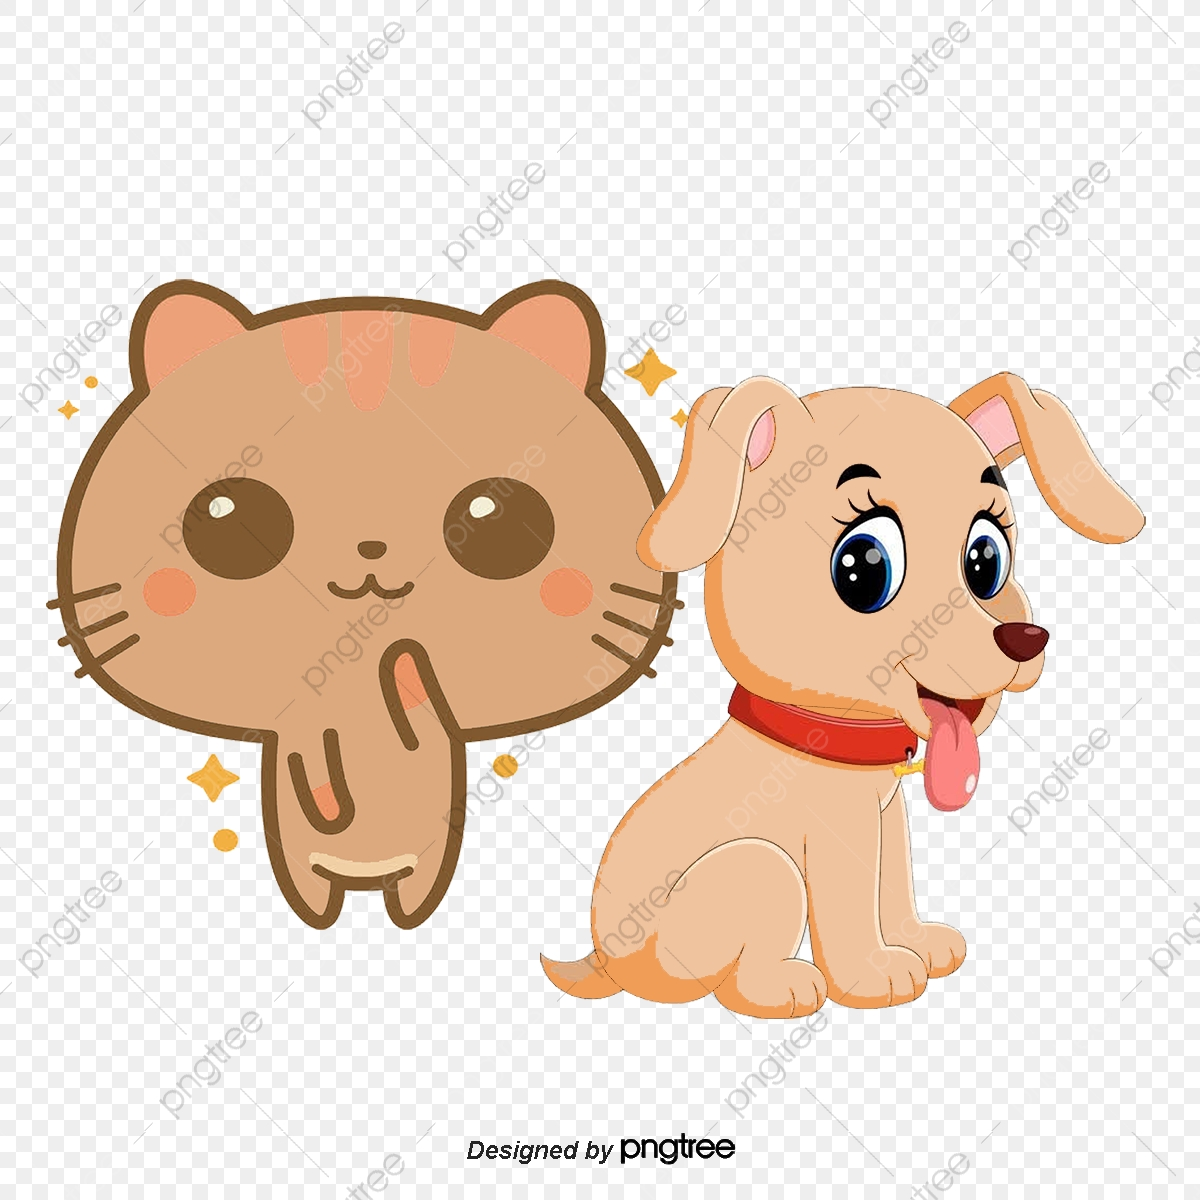 Cat Dog, Dog Clipart, Kitty, Dogs PNG Transparent Clipart Image and.